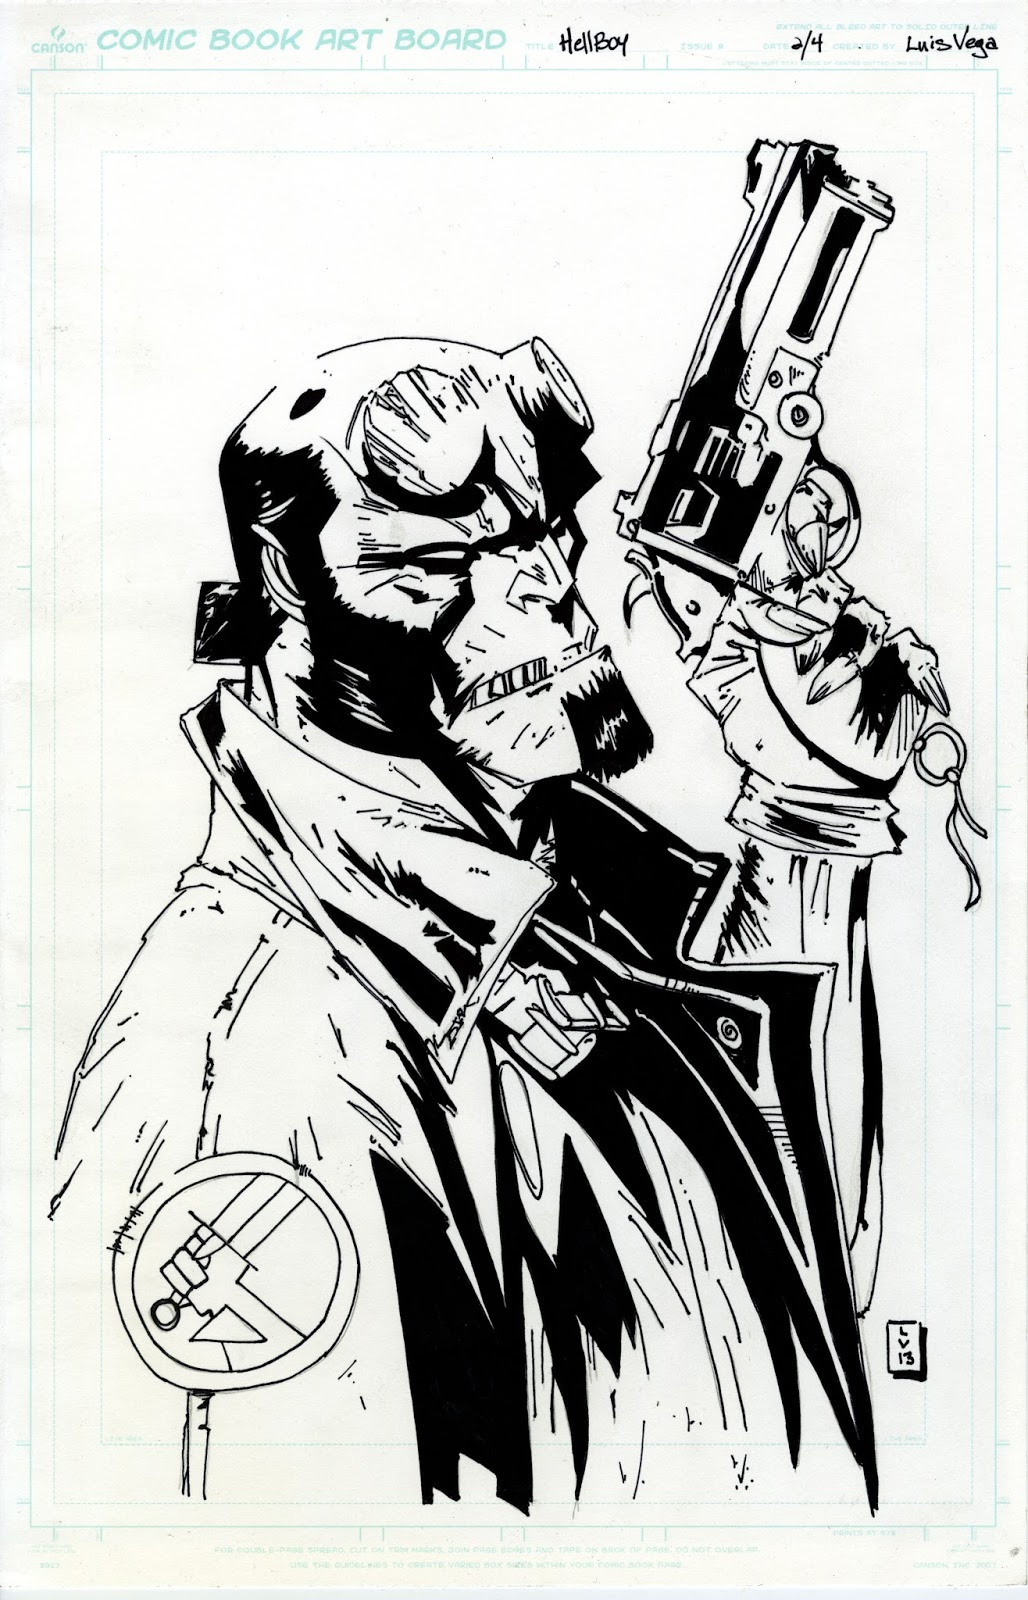 1028x1600 Hellboy Coloring Pages Best Ideas For Printable And Coloring Pages